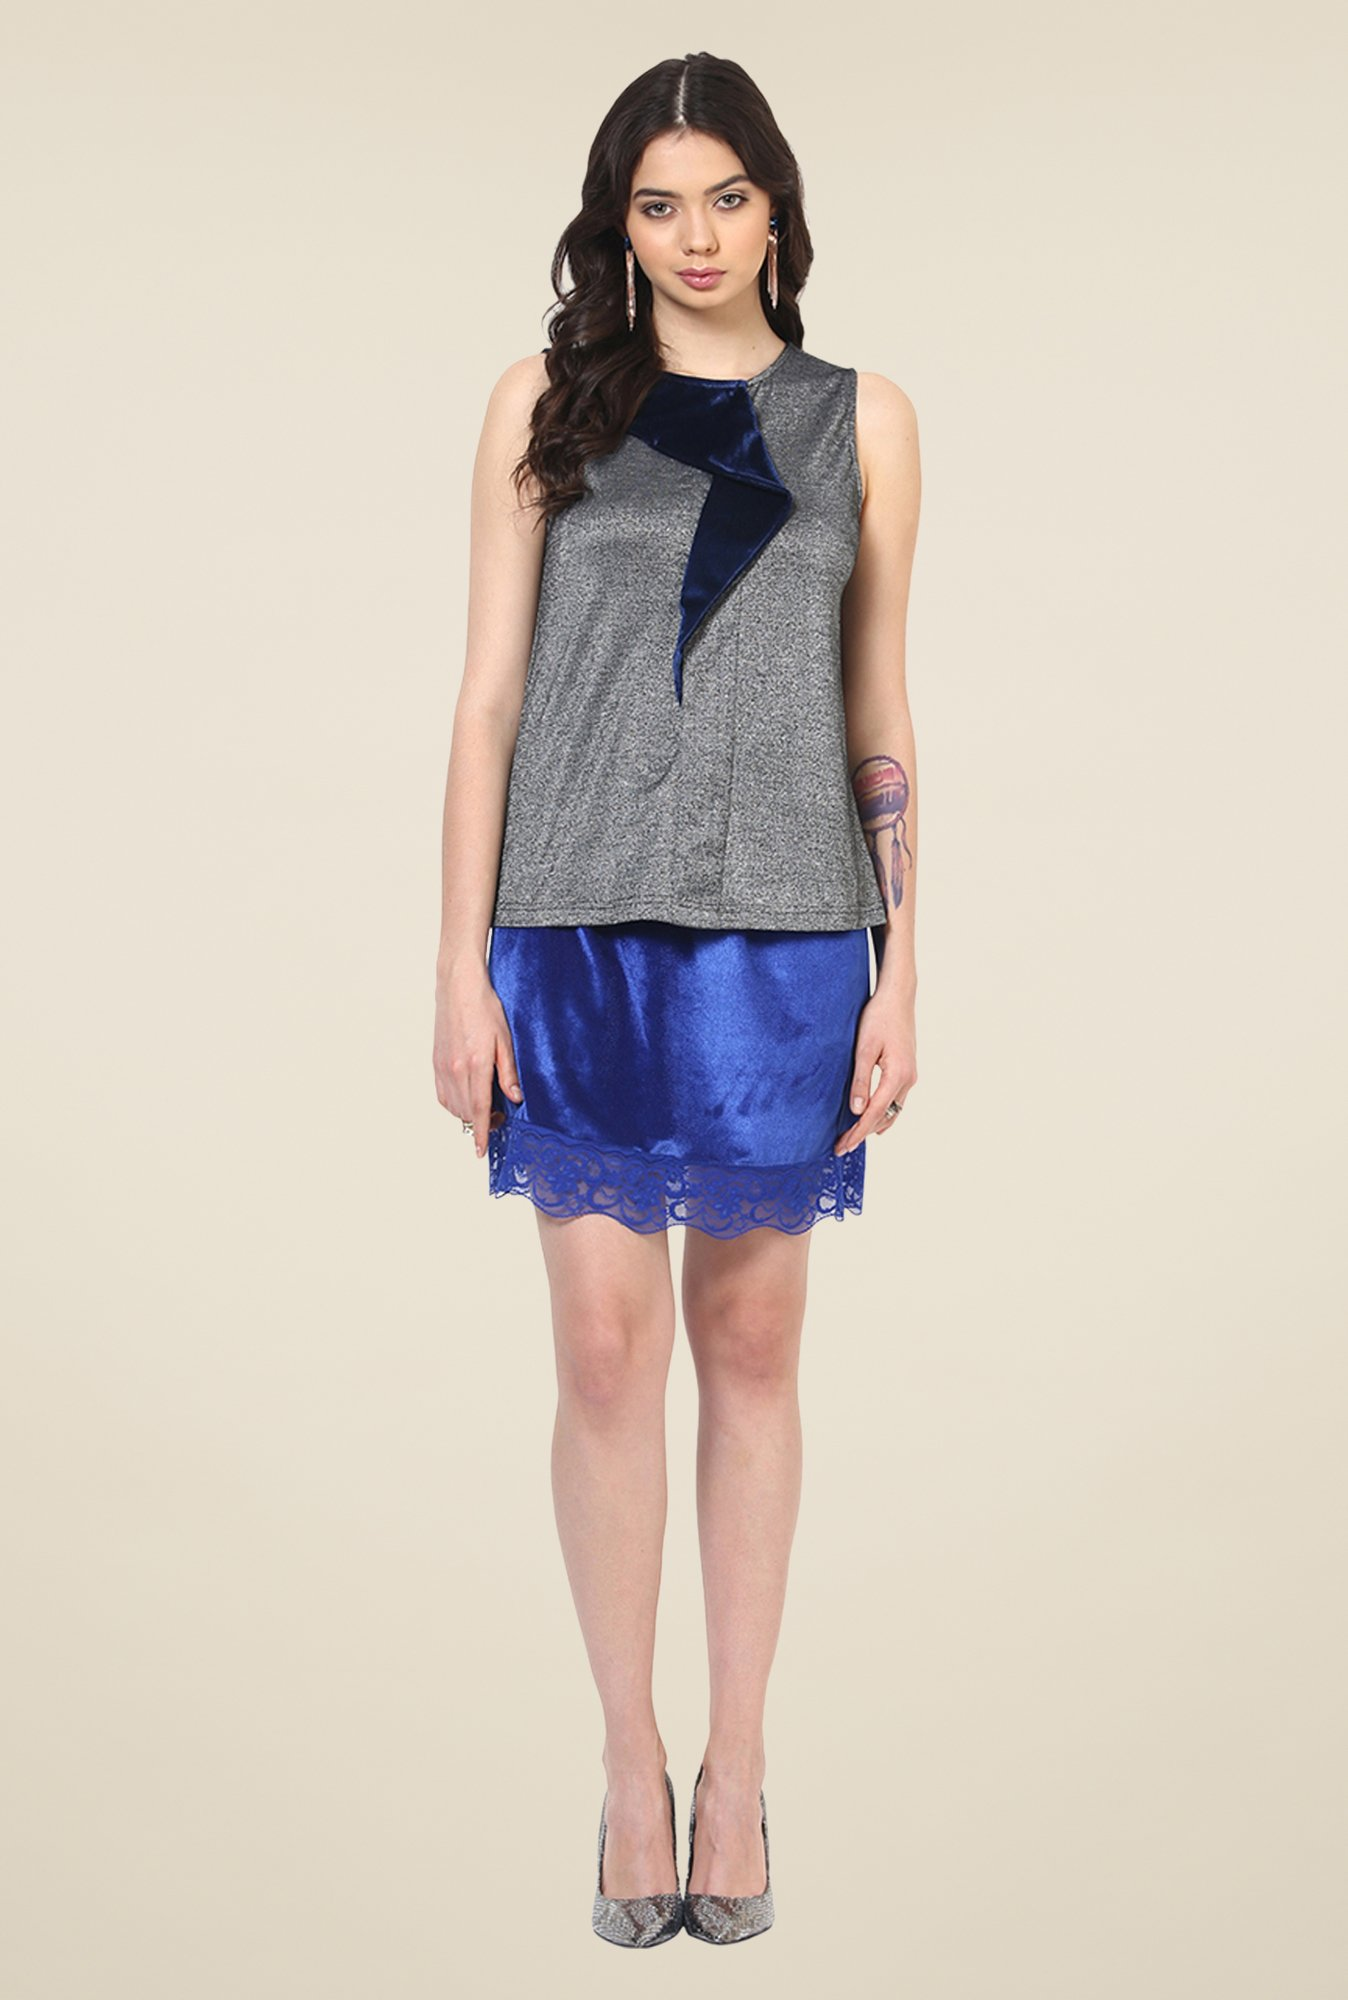 Yepme Mia Grey & Blue Party Top